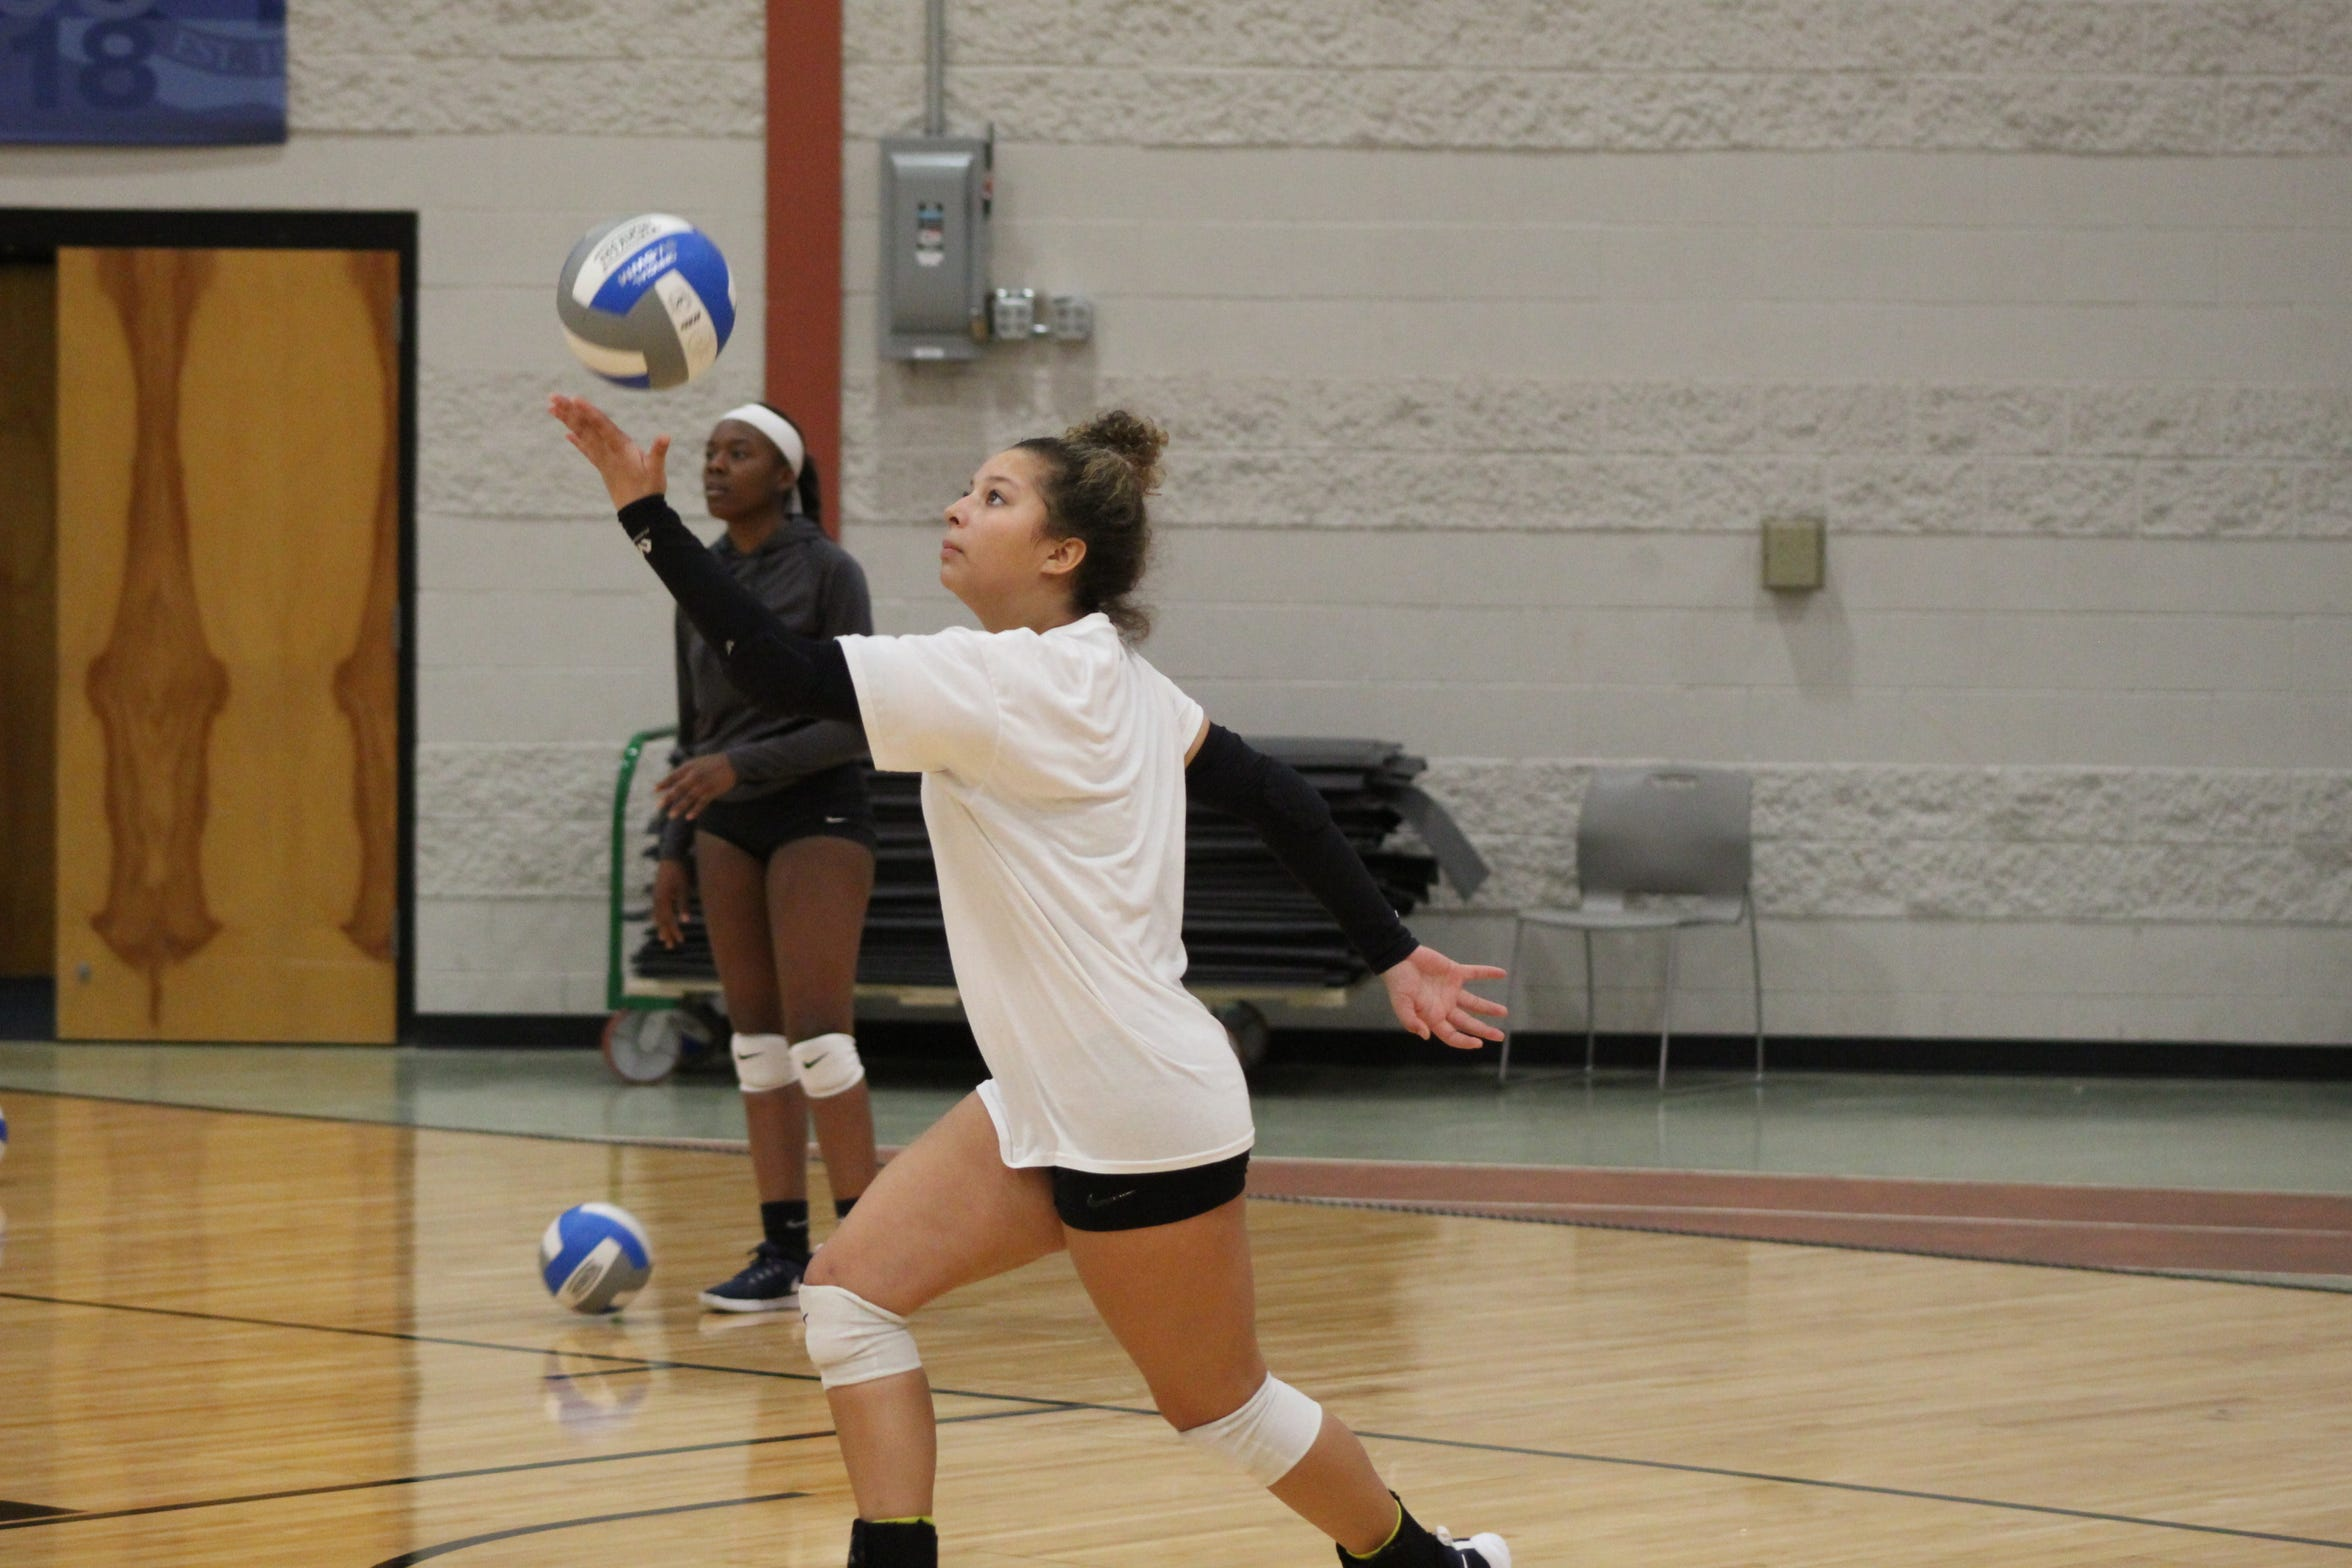 Terra State volleyball player Baleigh Robinson of Fostoria practices her serve during an Oct. 18 practice at the college's Student Activities Center.